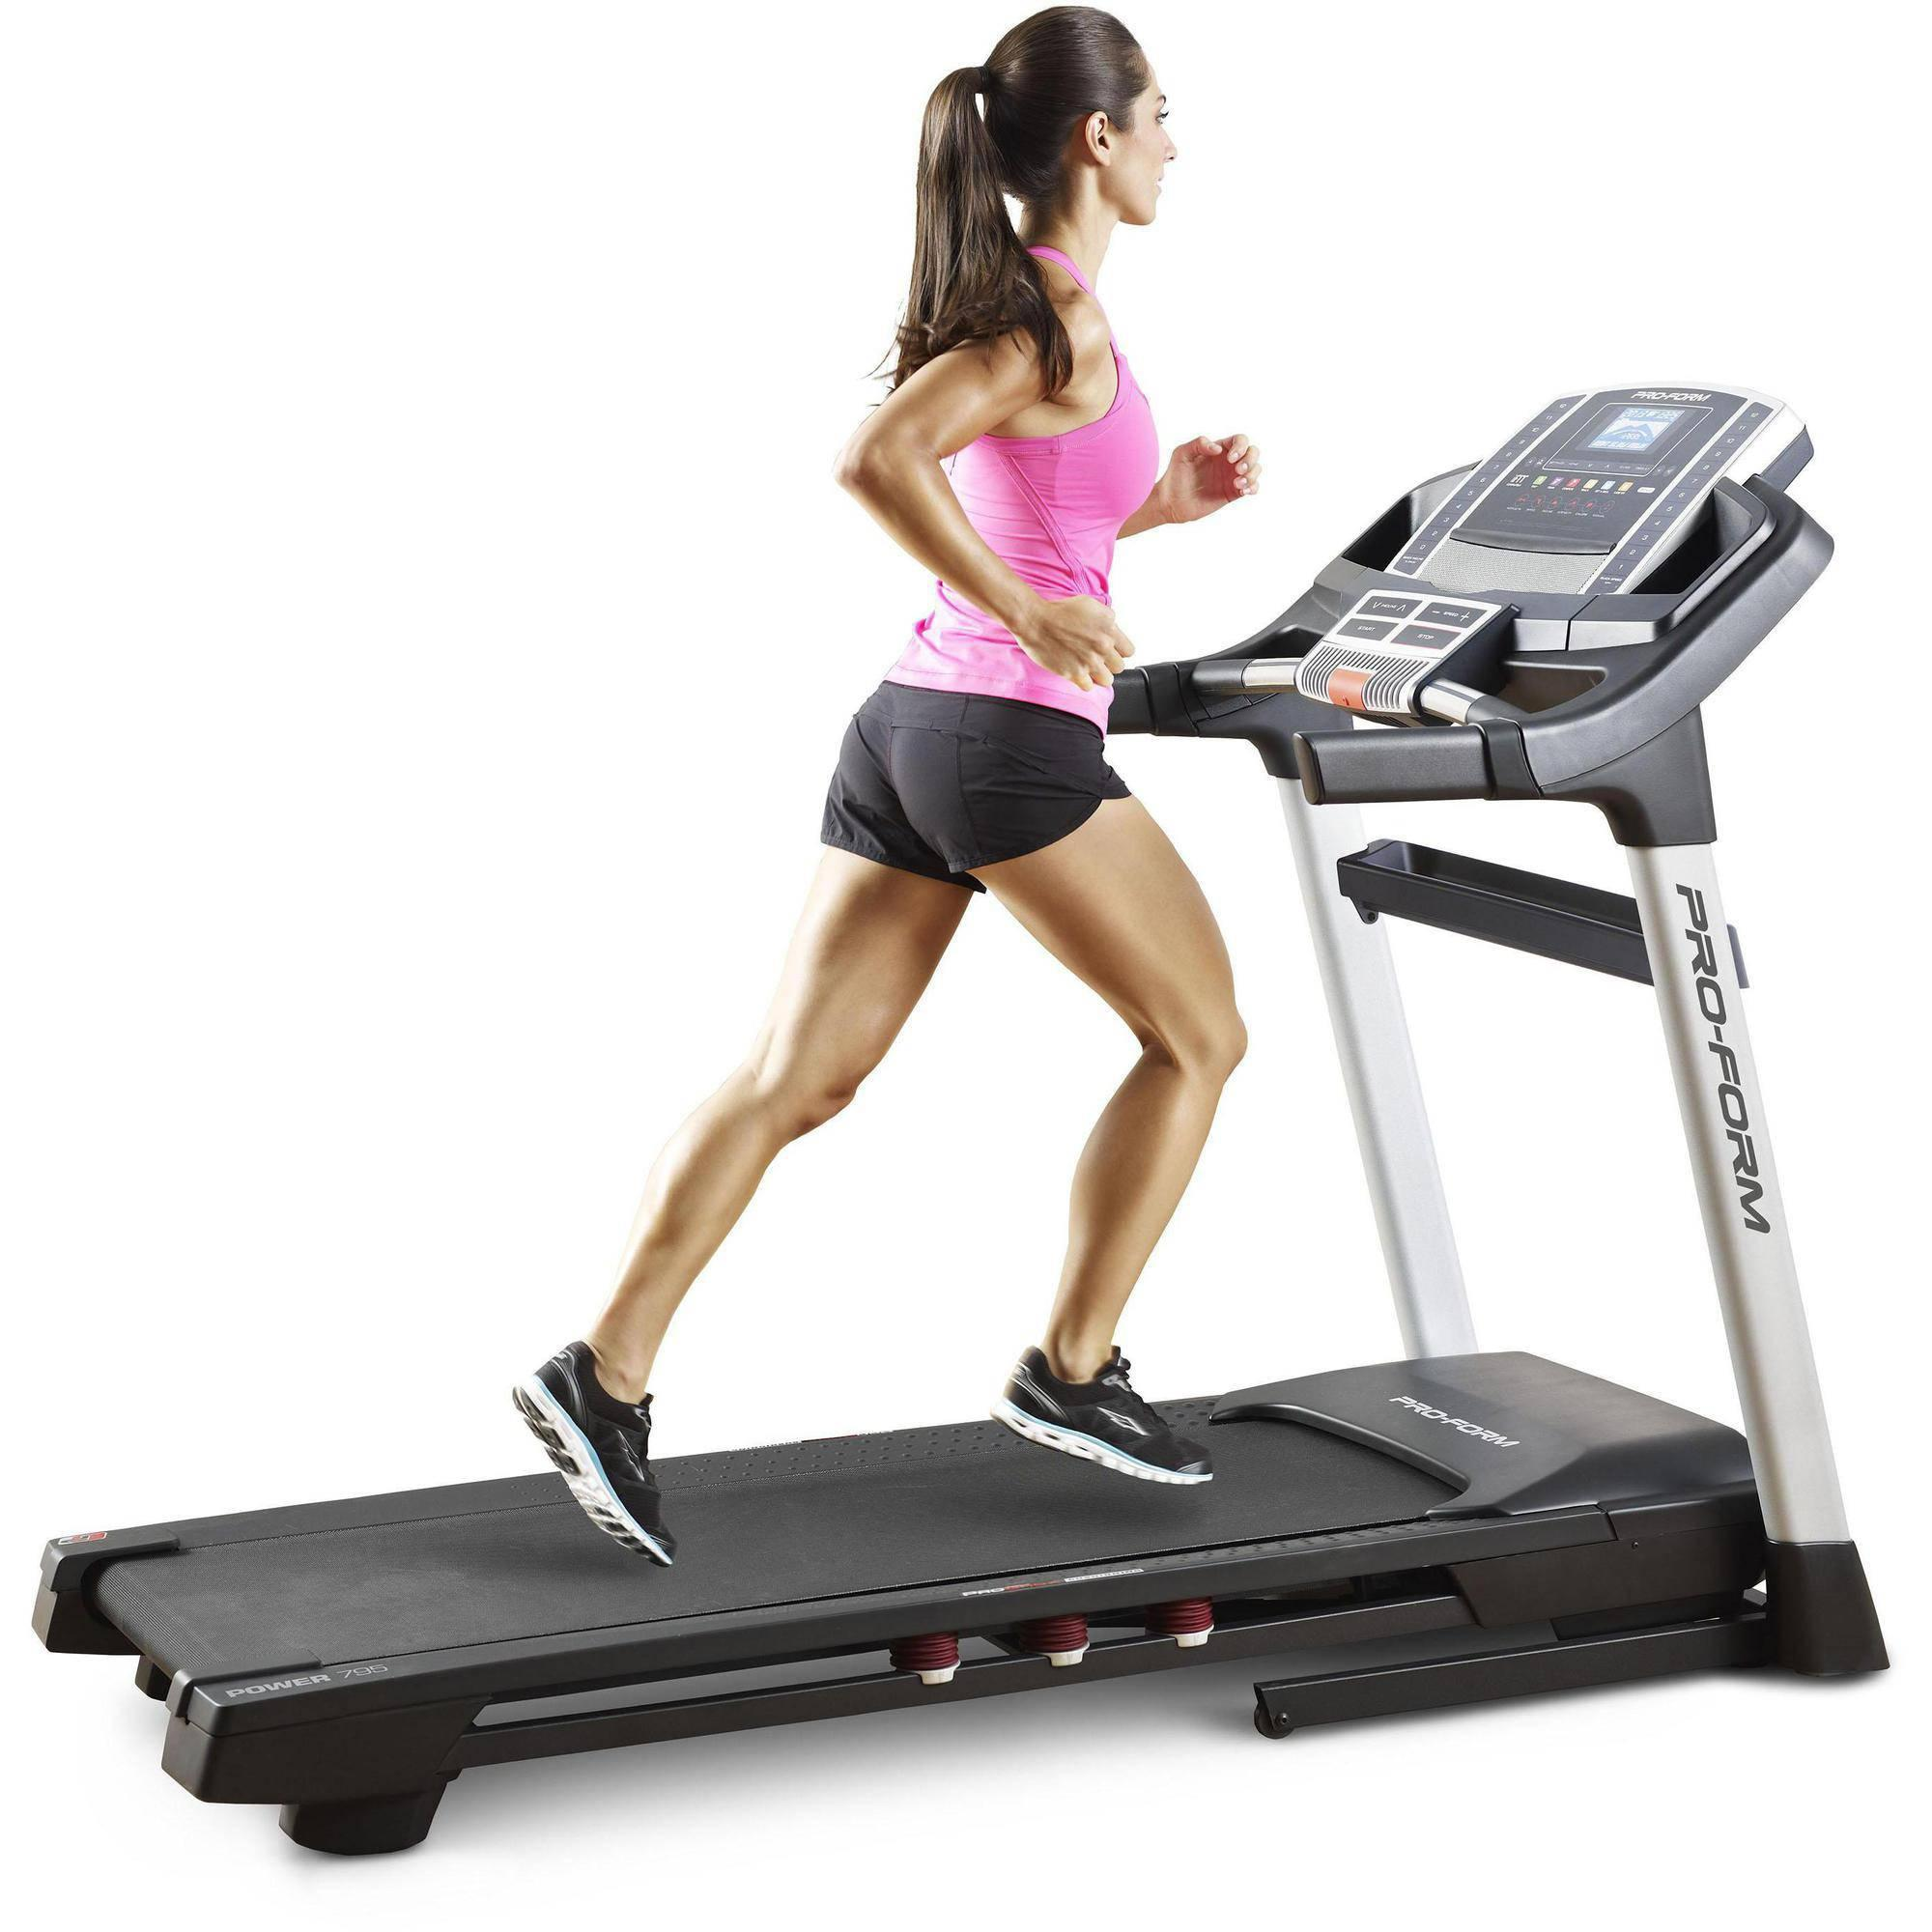 Golds Gym Treadmill Not Working: 2015 Best Treadmills Under $1000